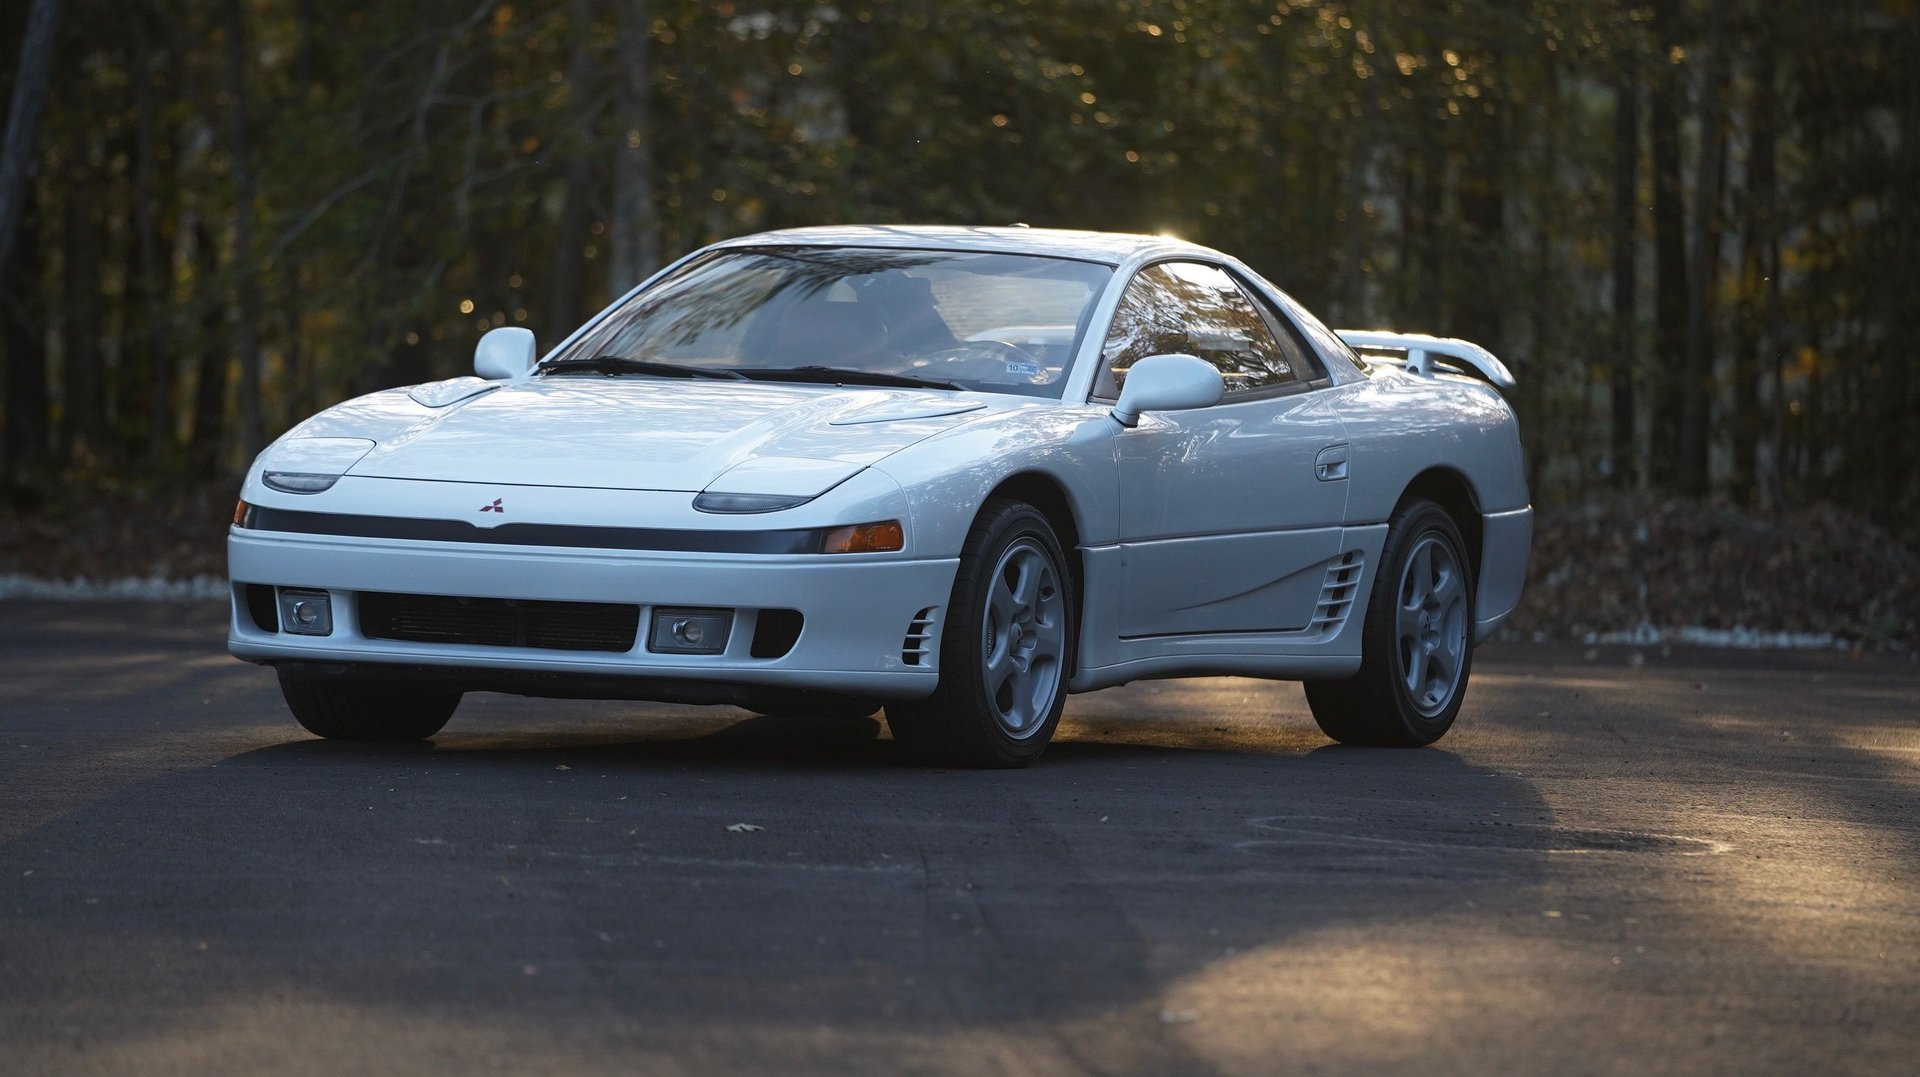 1992 mitsubishi 3000gt 2dr coupe vr 4 twin turbo